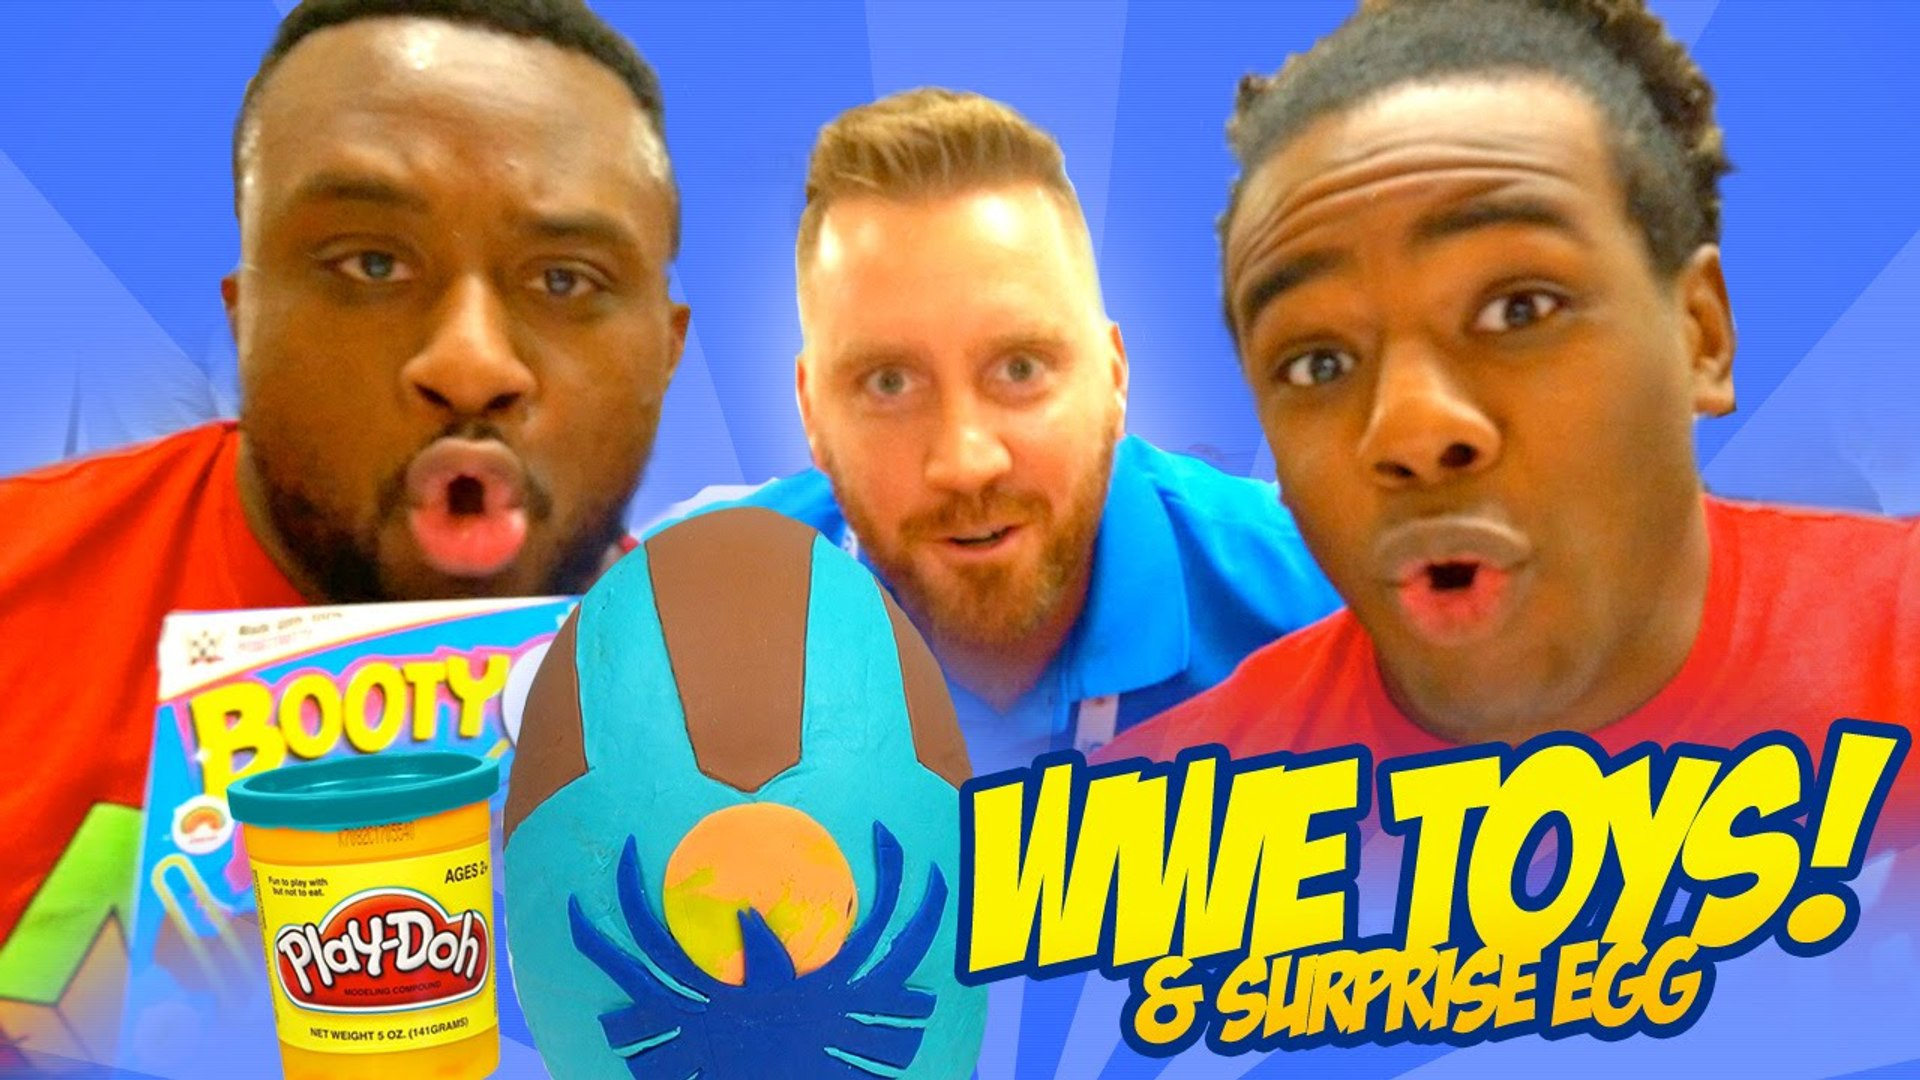 WWE Toys NEW DAY   a Play-Doh Surprise Egg with WWE Toys by KidCity